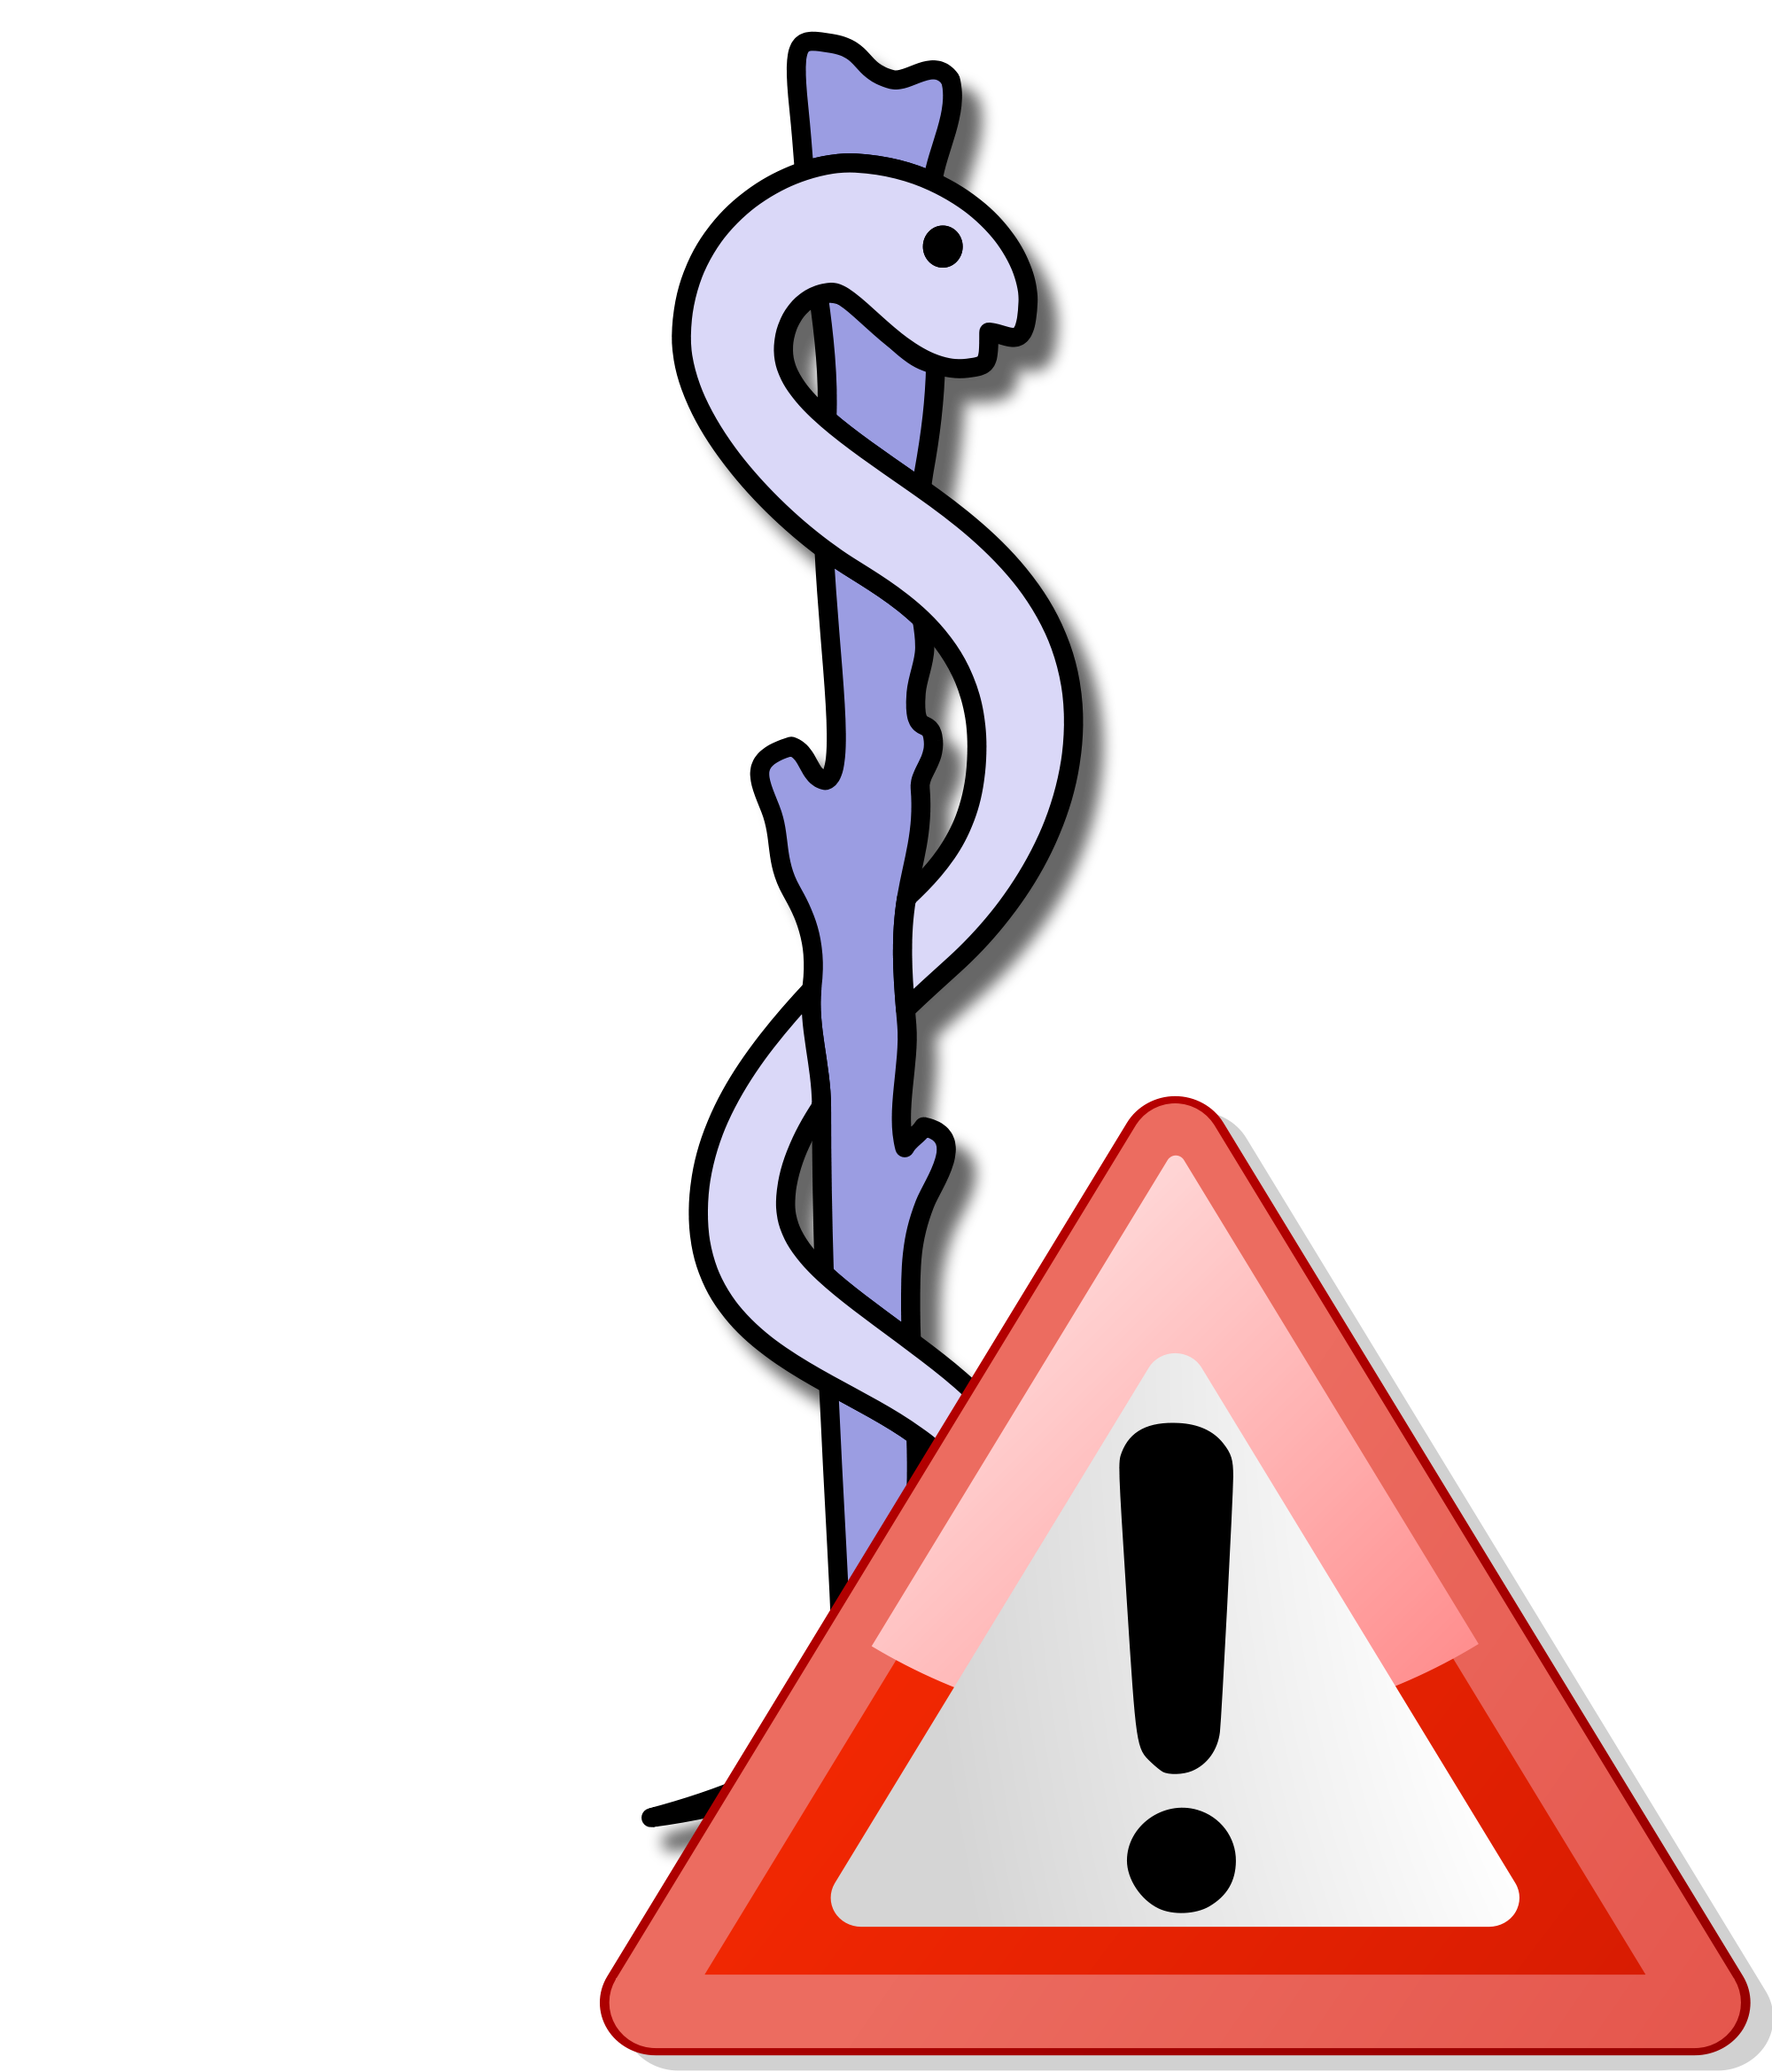 Caution svg #11, Download drawings